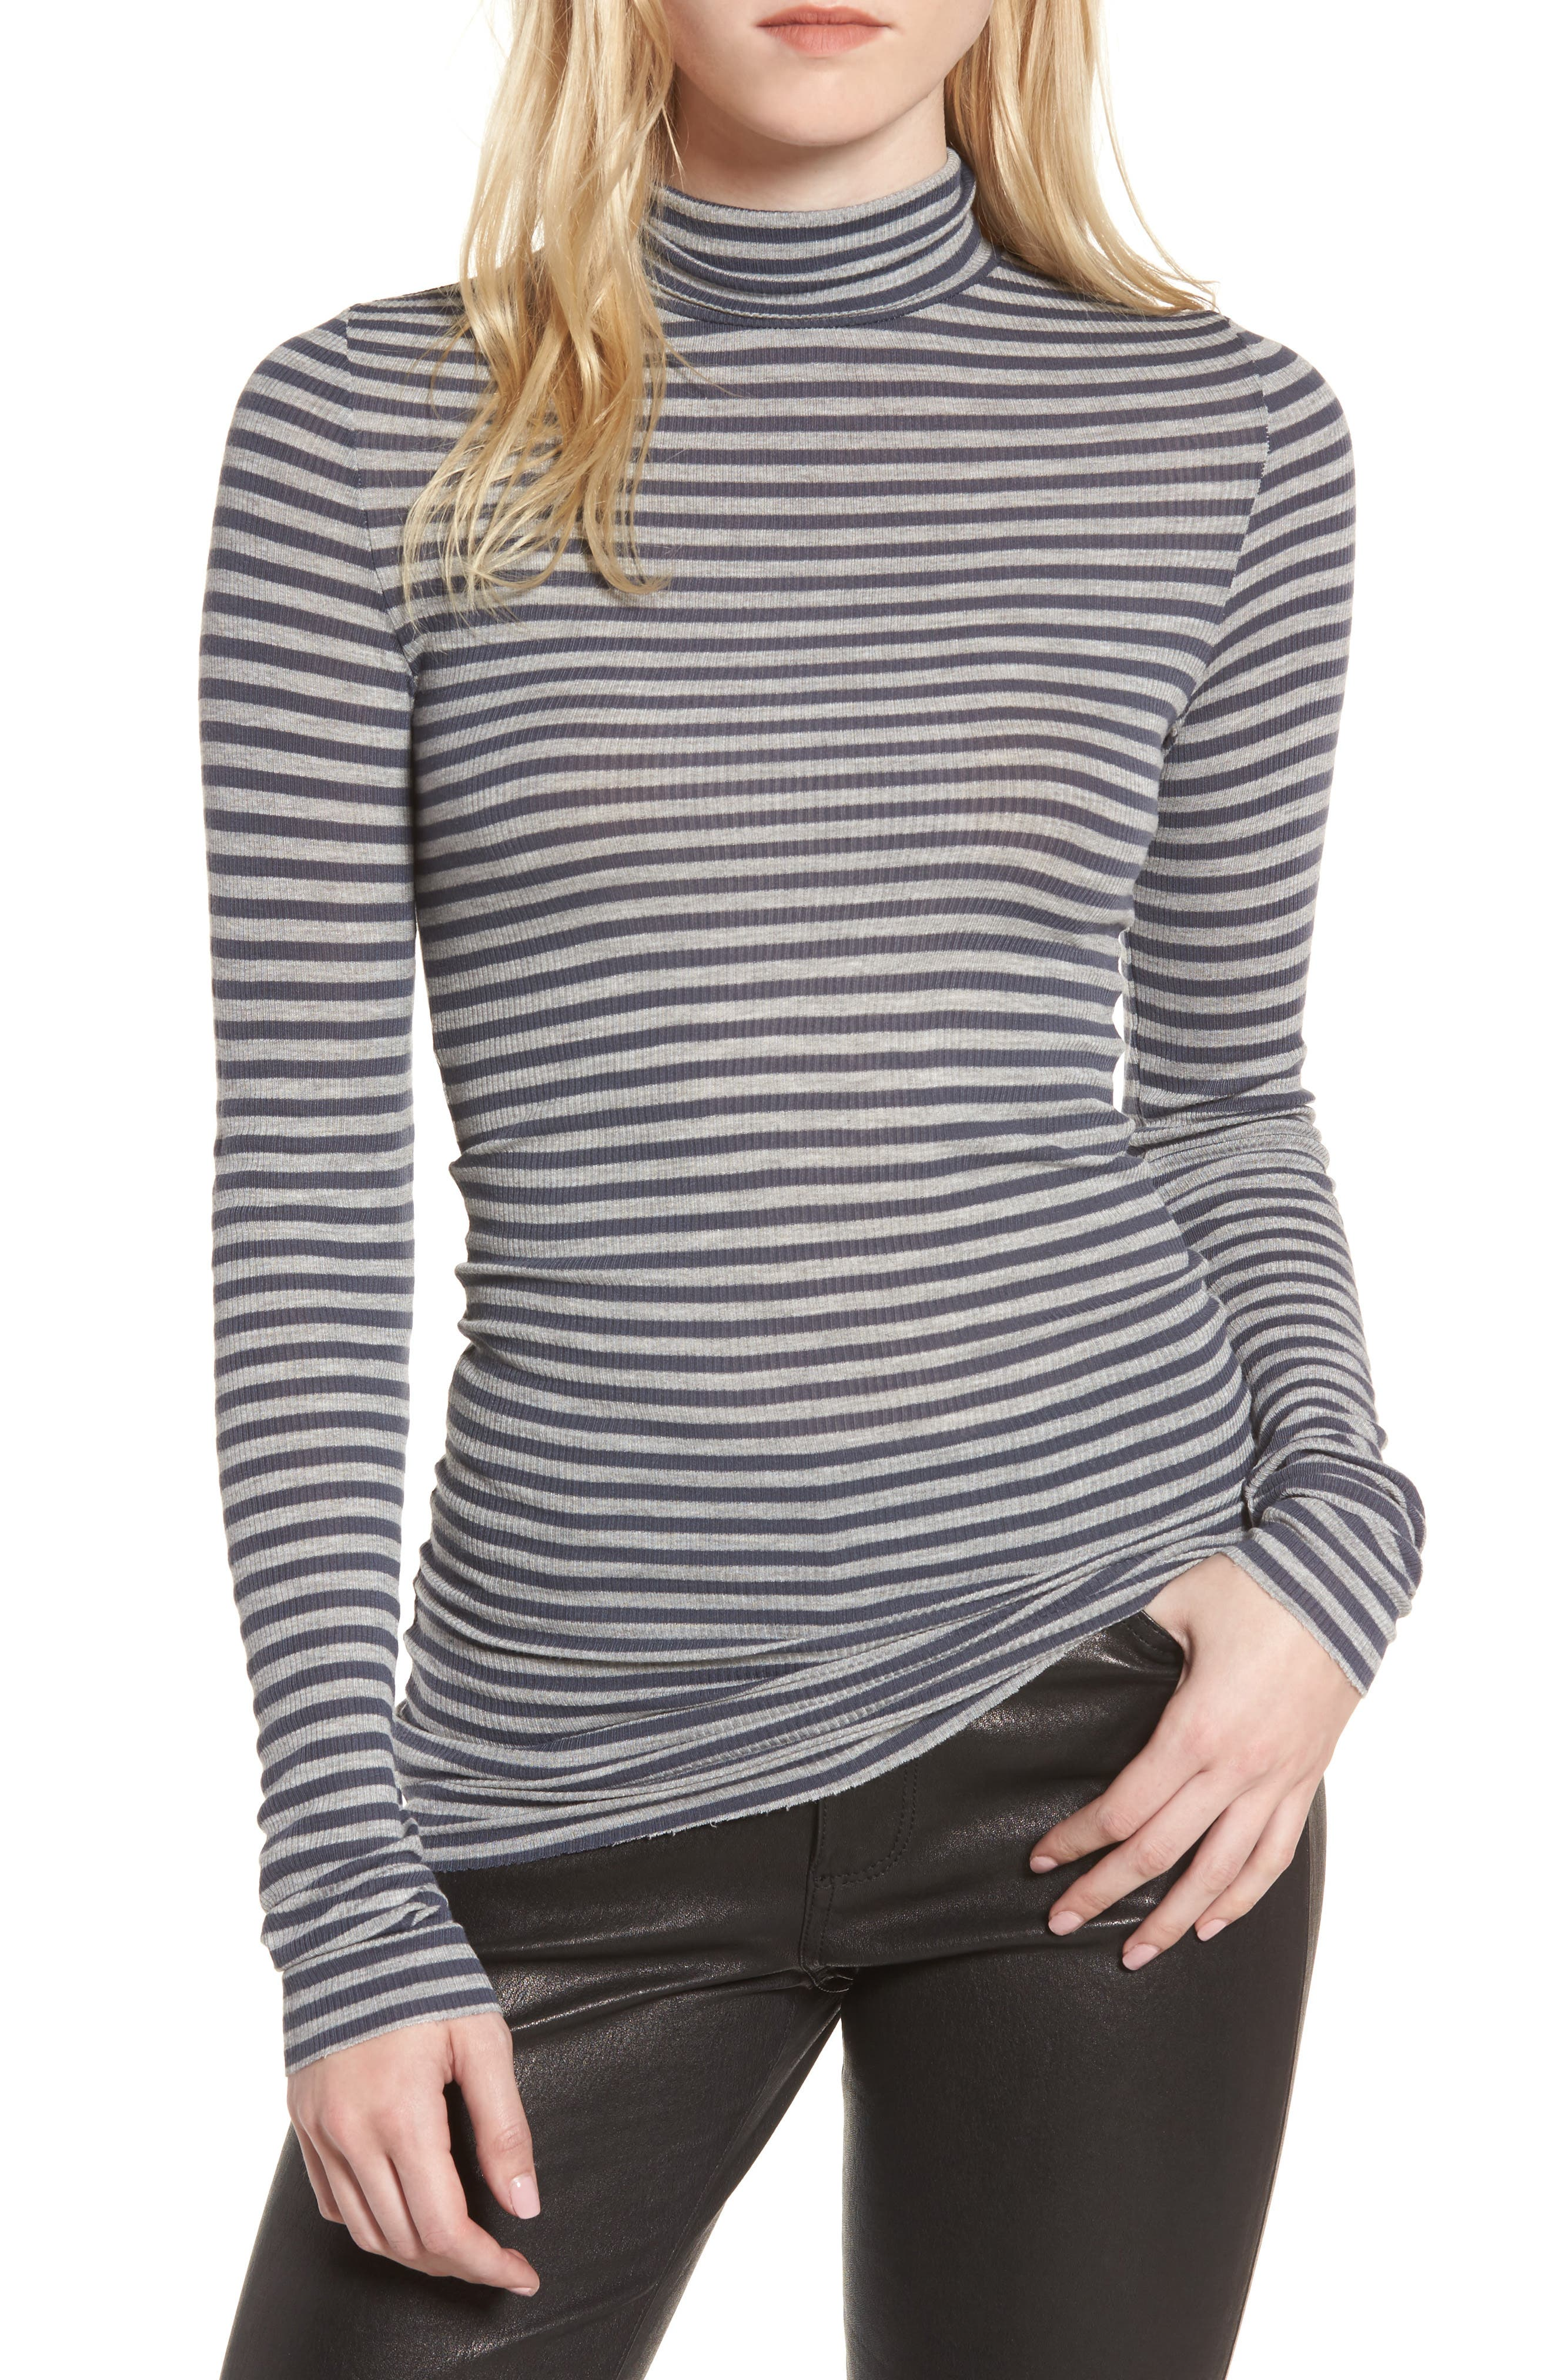 Jill Turtleneck,                         Main,                         color, Blueberry/ Heather Grey